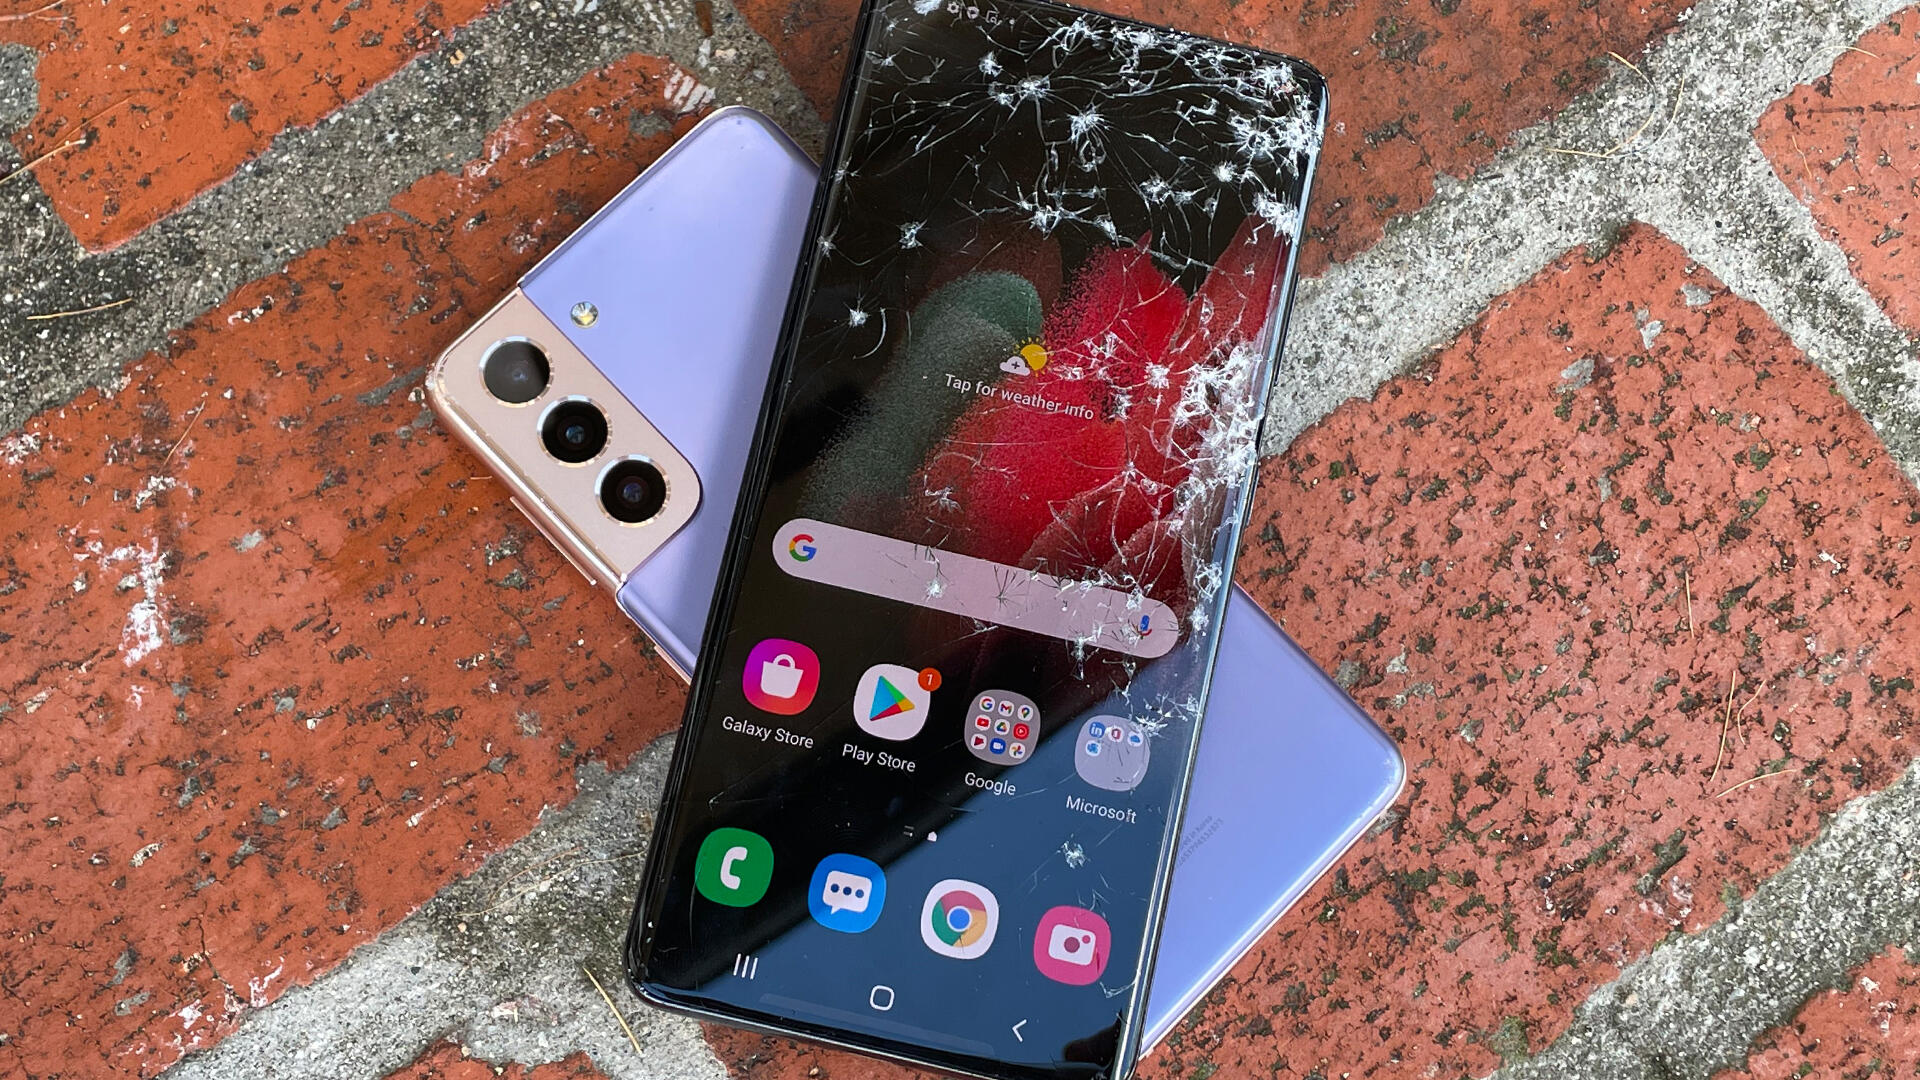 Video: Galaxy S21 and S21 Ultra: Not as tough as we'd hoped